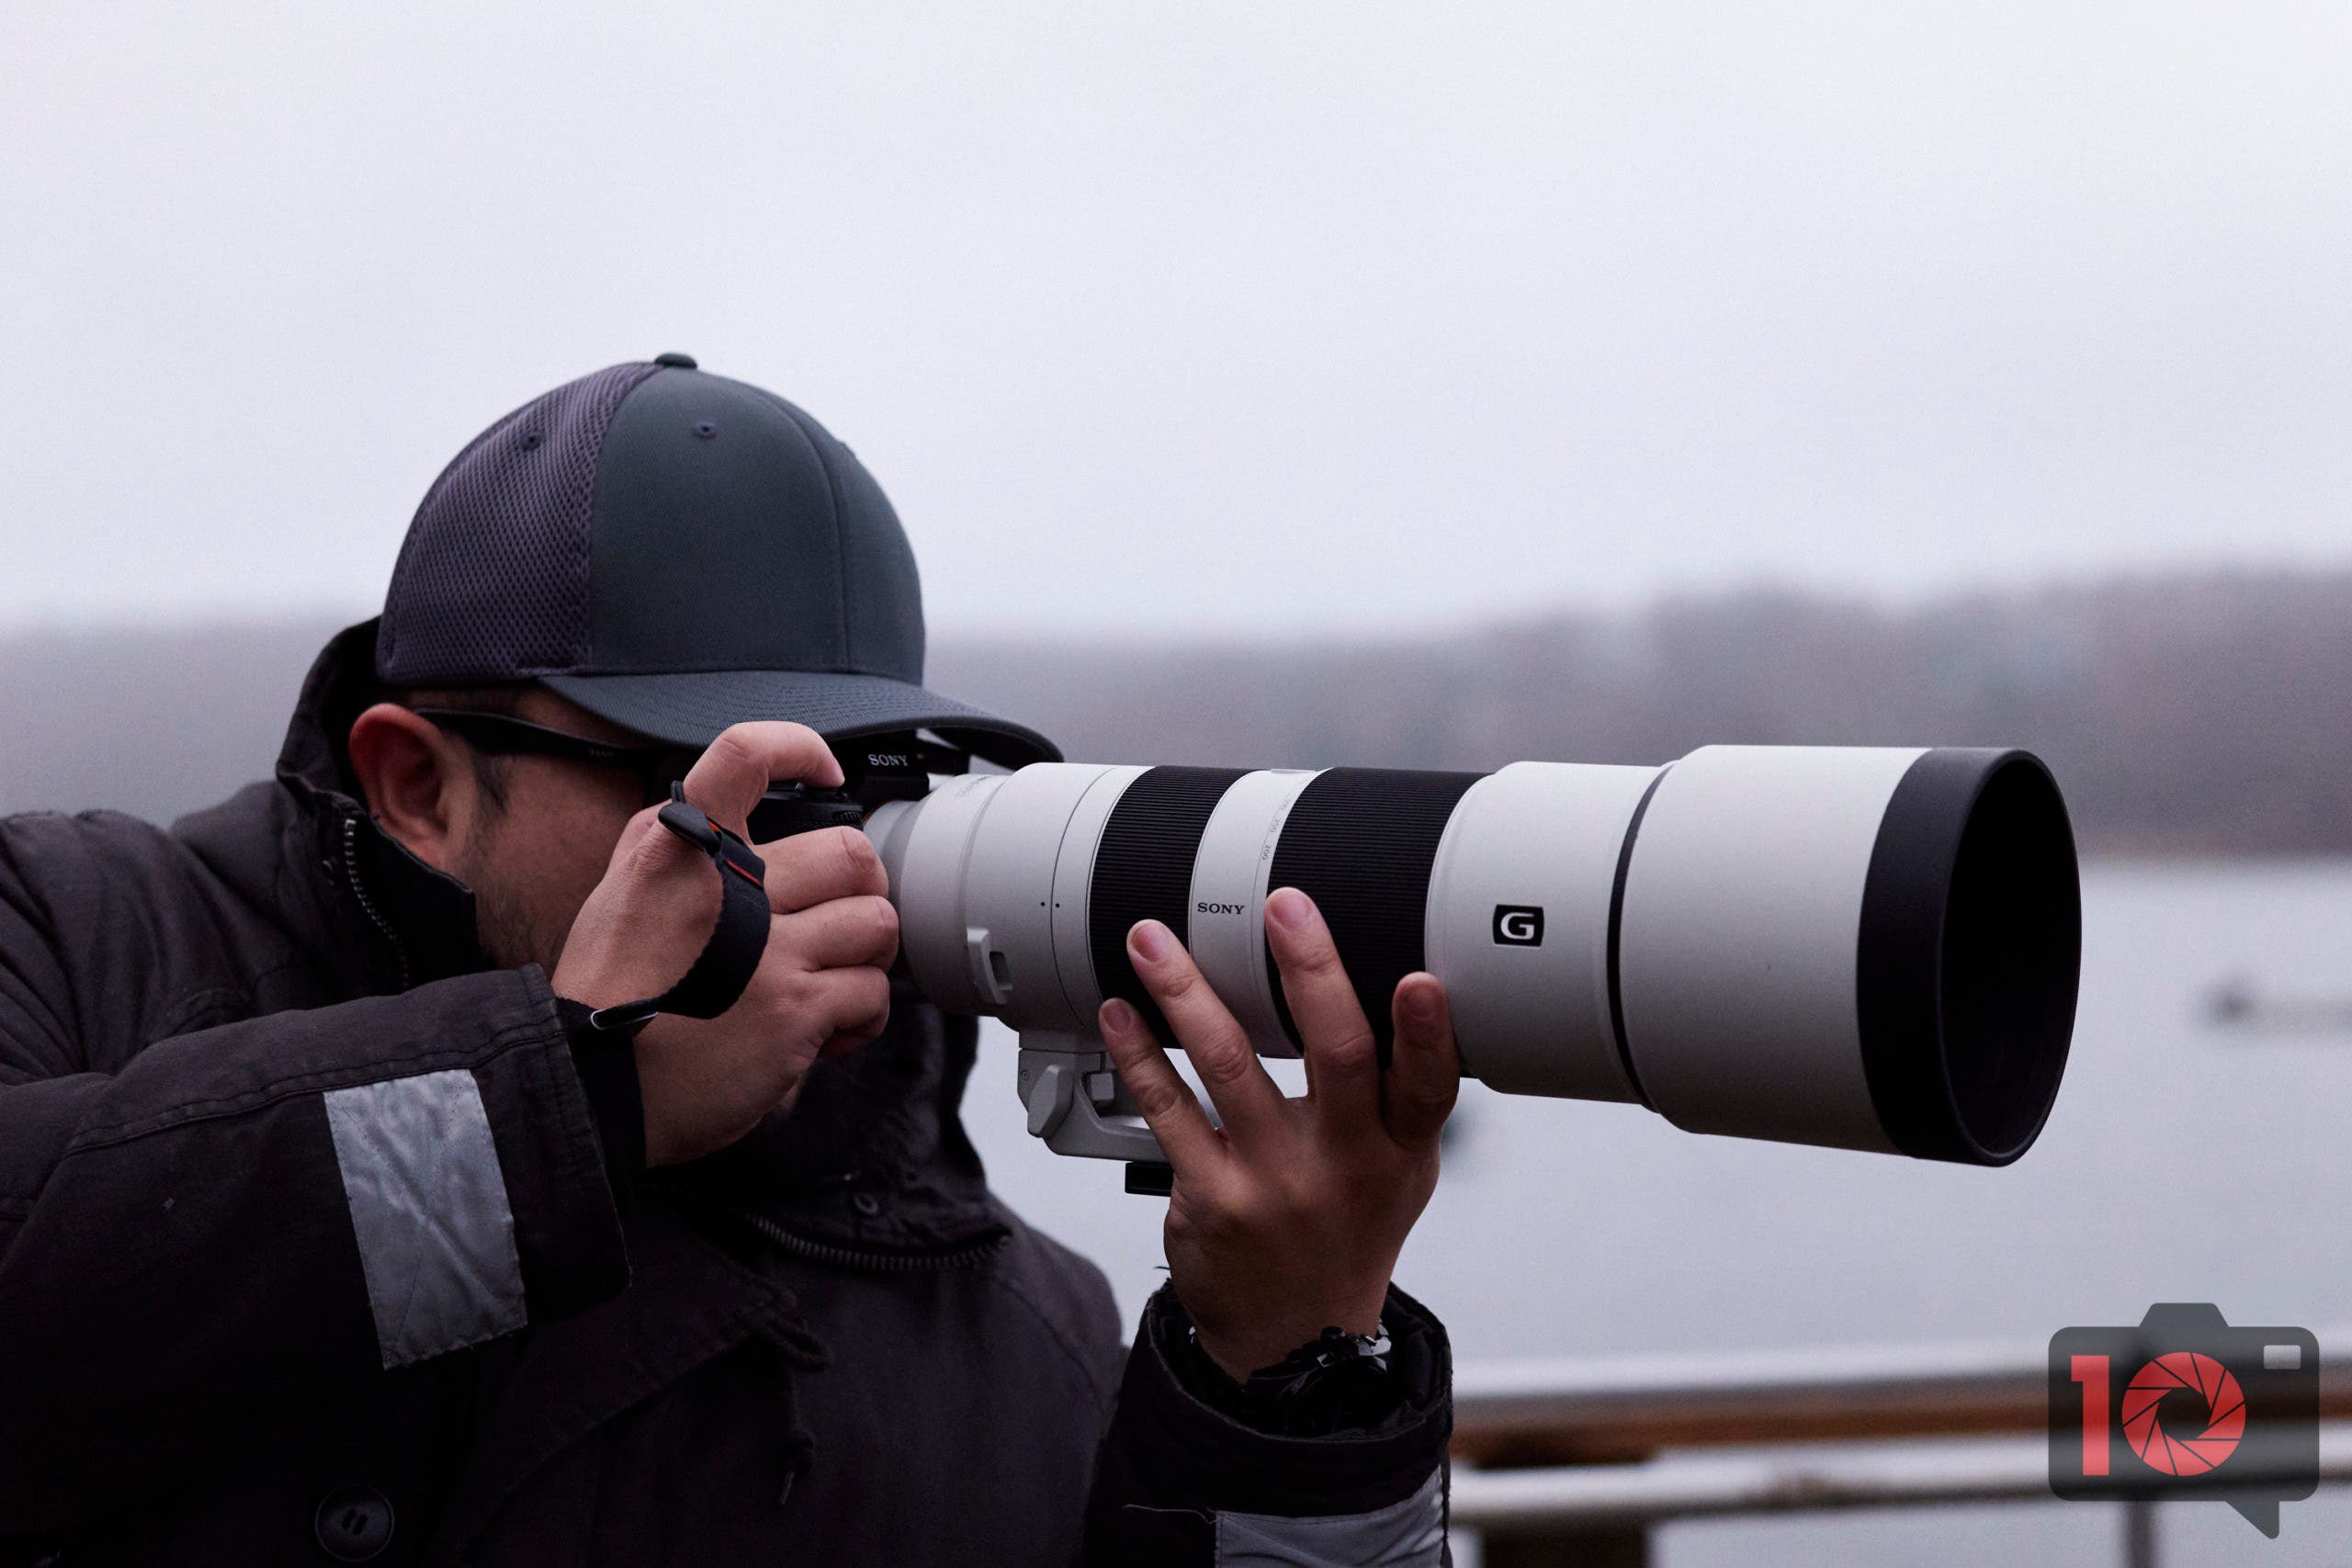 Review: Sony 200-600mm f5.6-6.3 G OSS Super Telephoto (Sony FE)